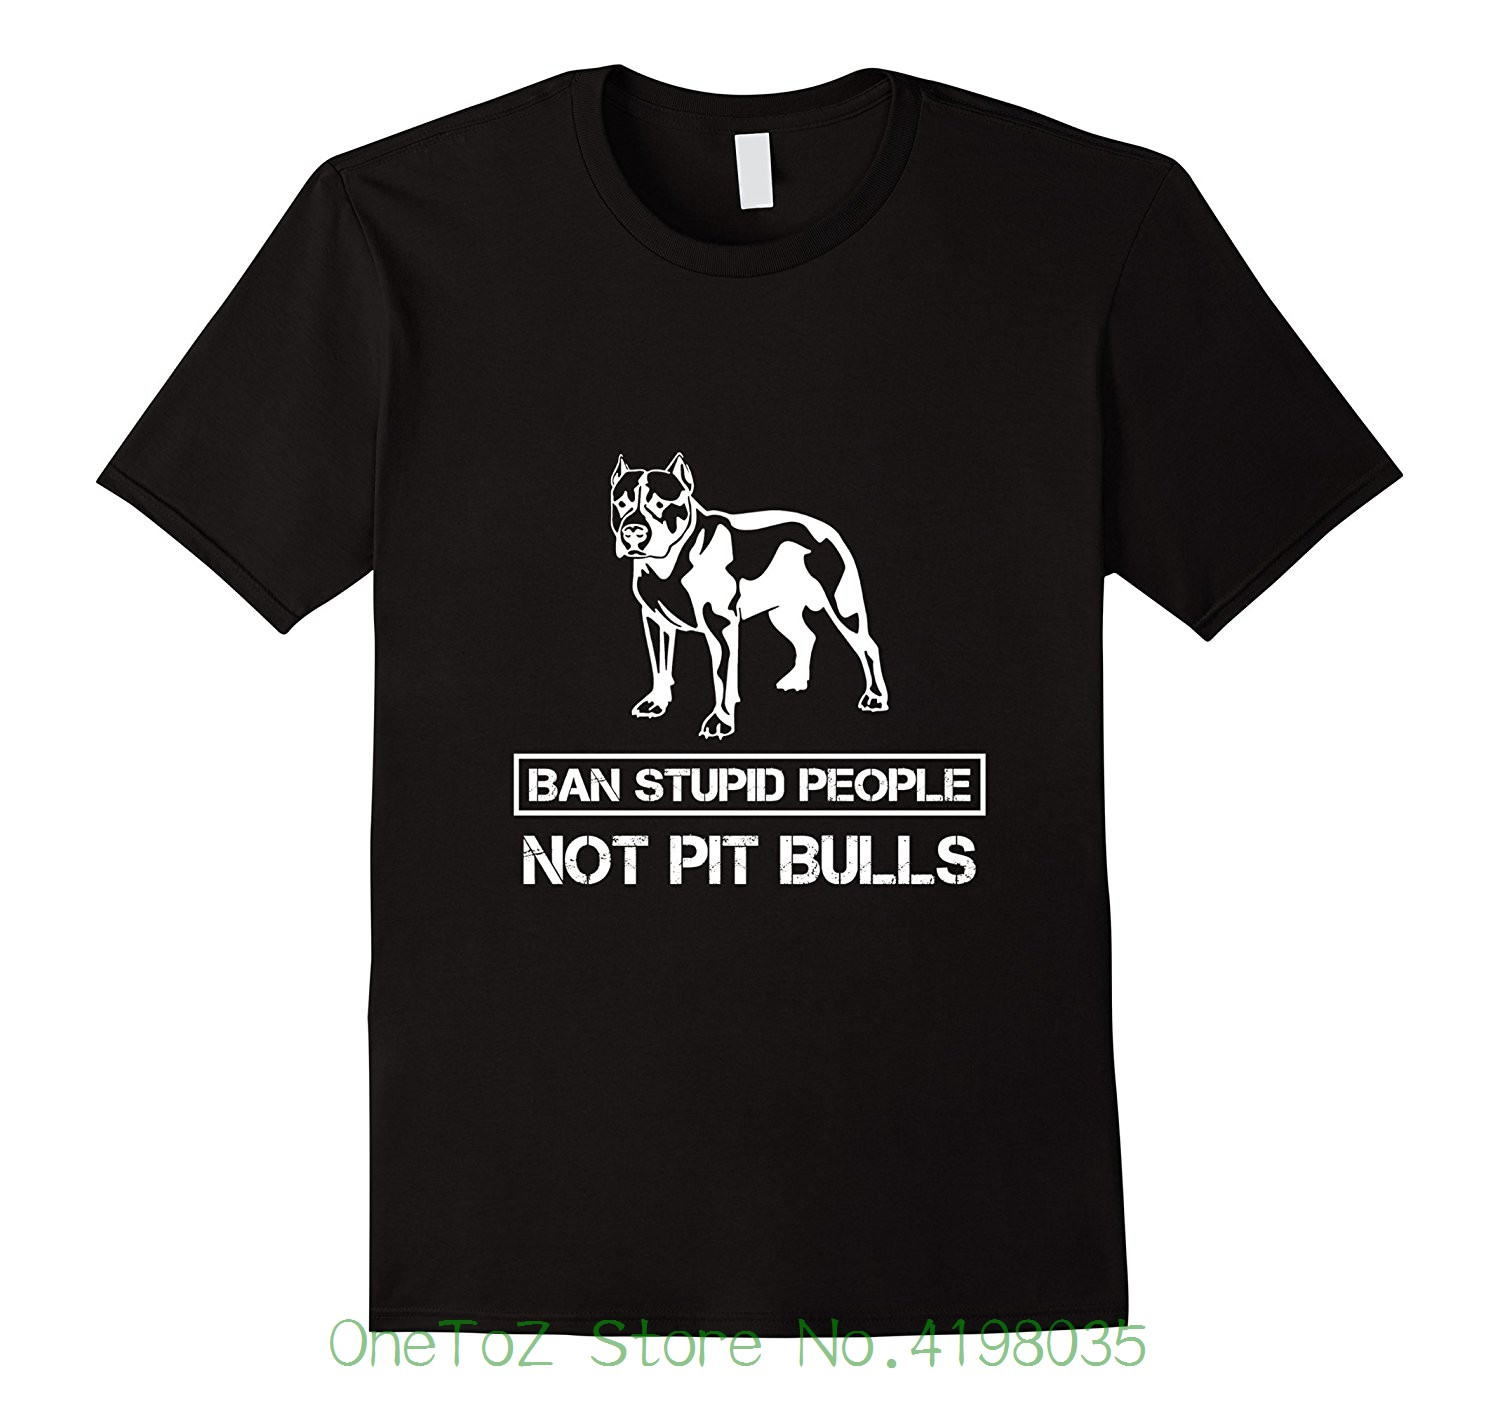 Pitbull T-shirt - Ban Stupid People Not Pit Bulls Summer Short Sleeve Shirts Tops S~3xl  ...